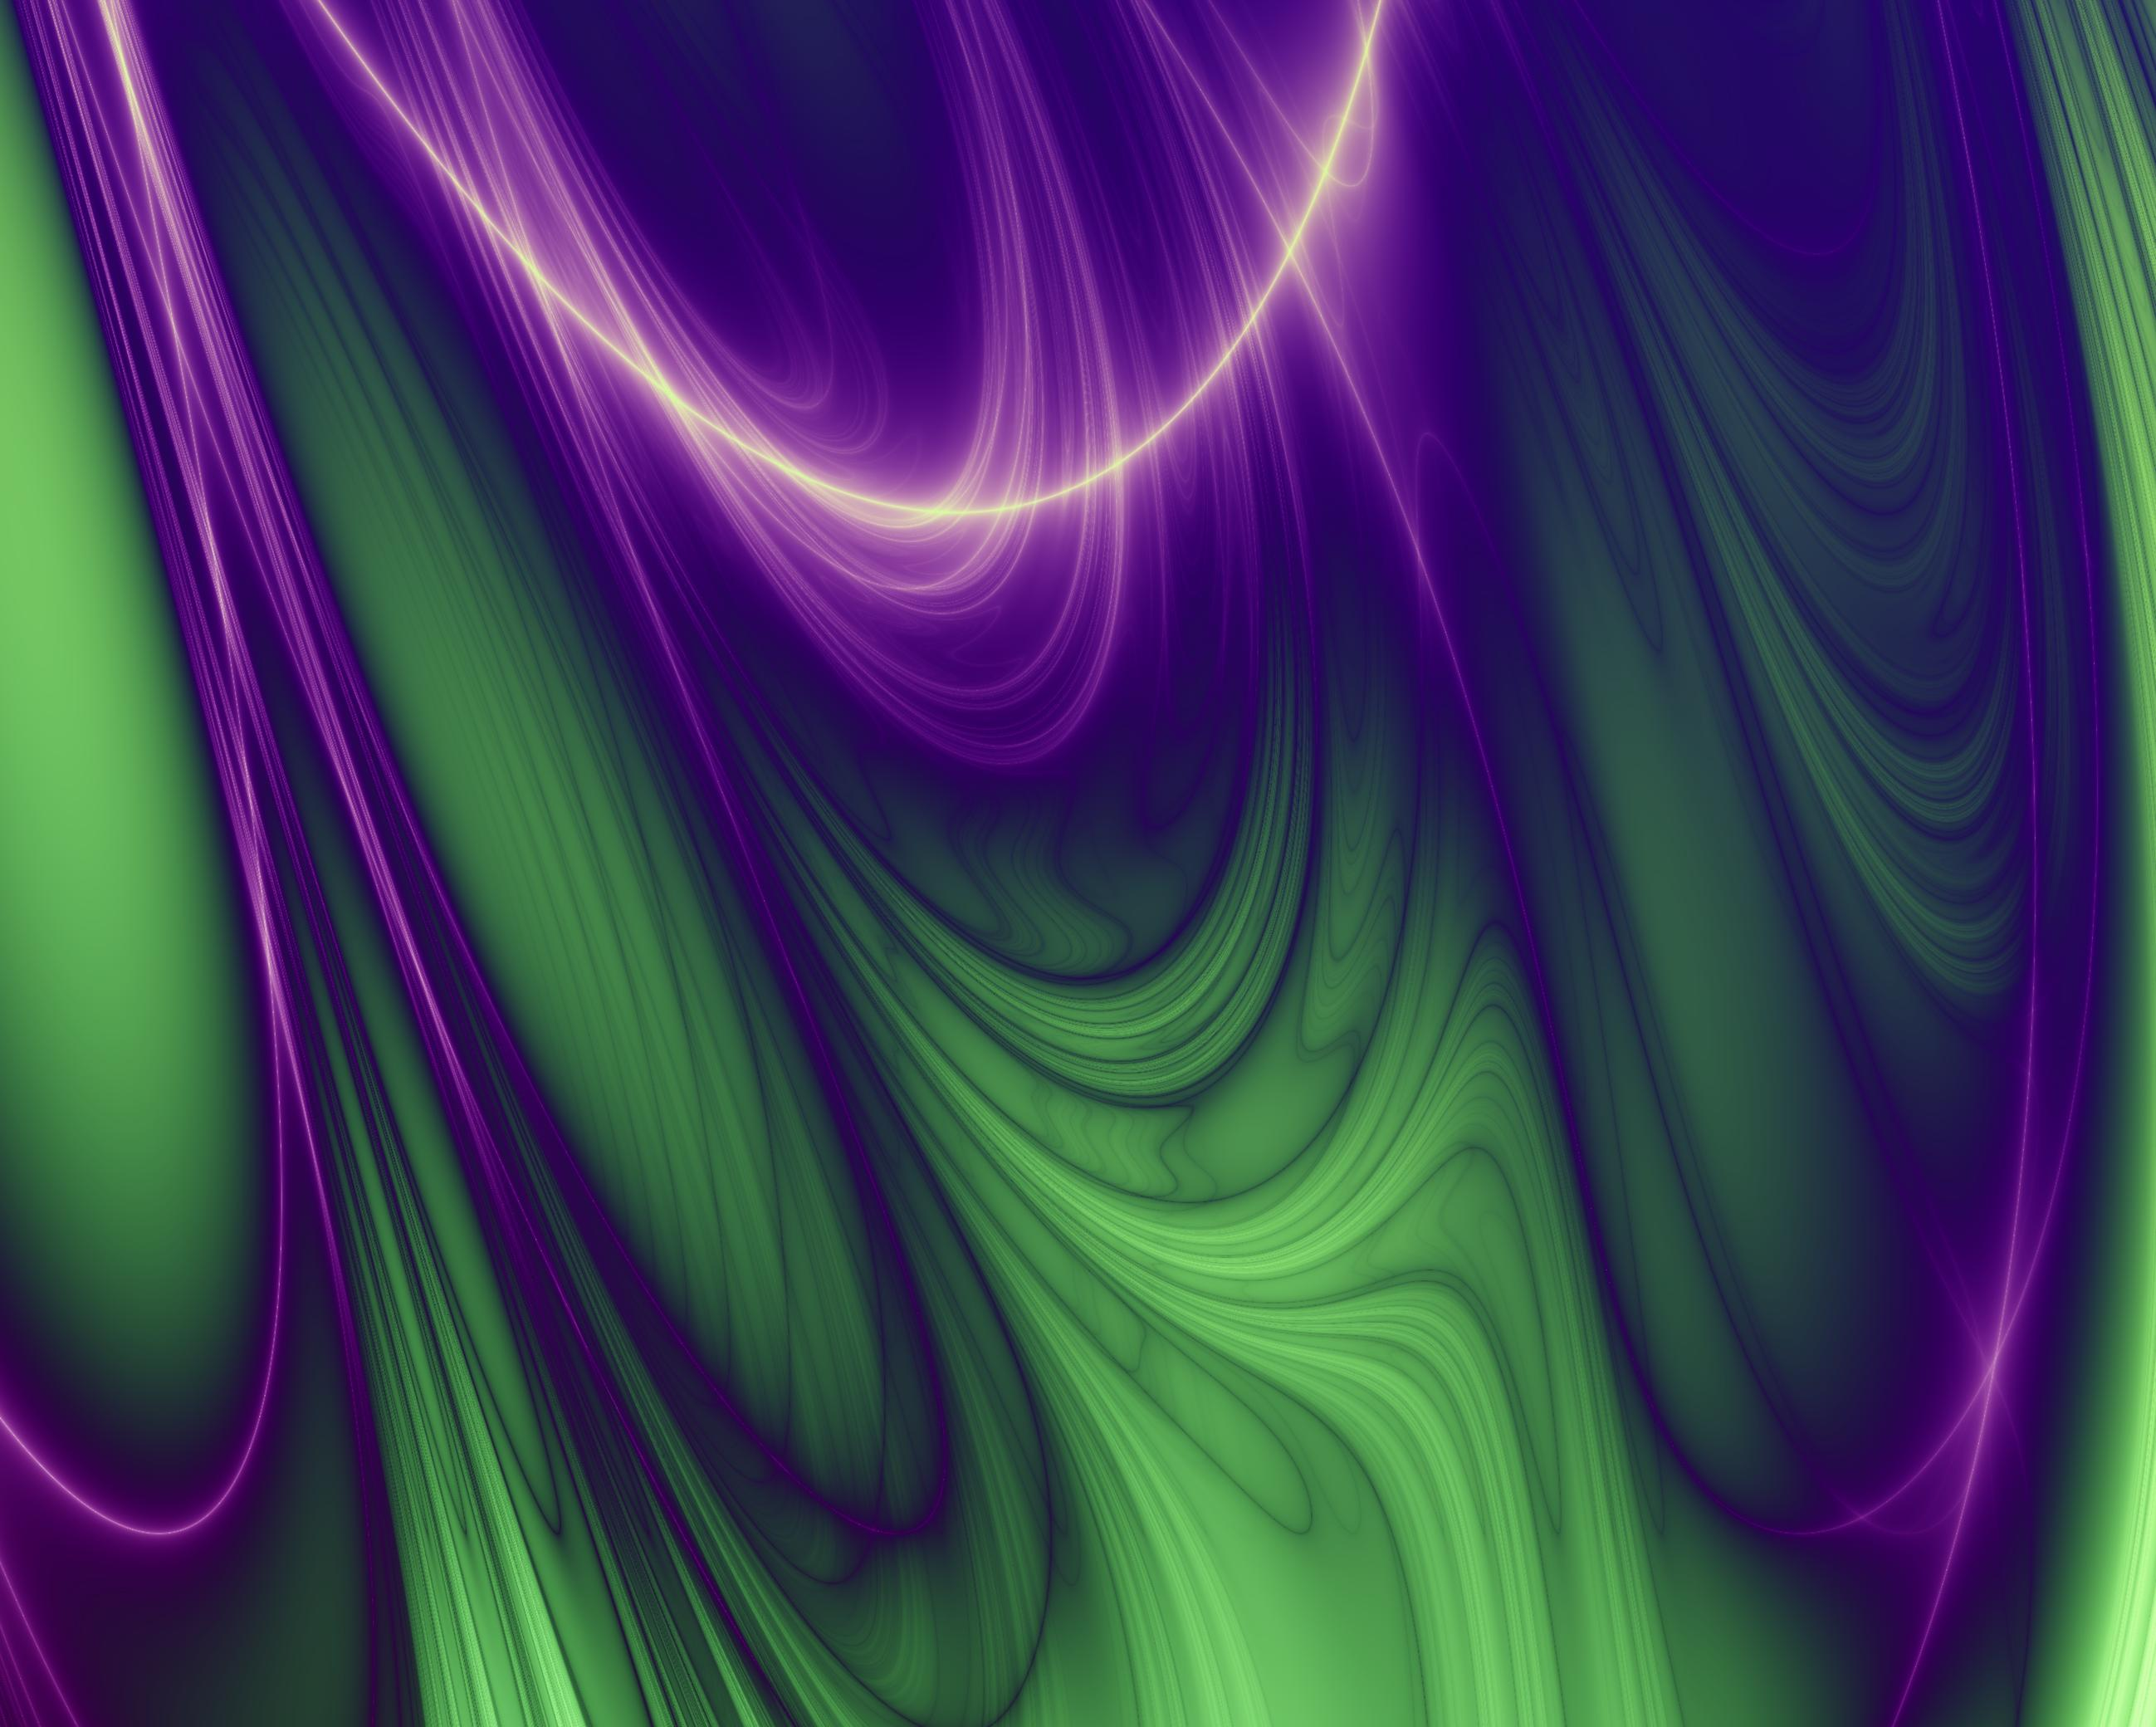 56189 download wallpaper Abstract, Lines, Wavy, Purple, Violet screensavers and pictures for free